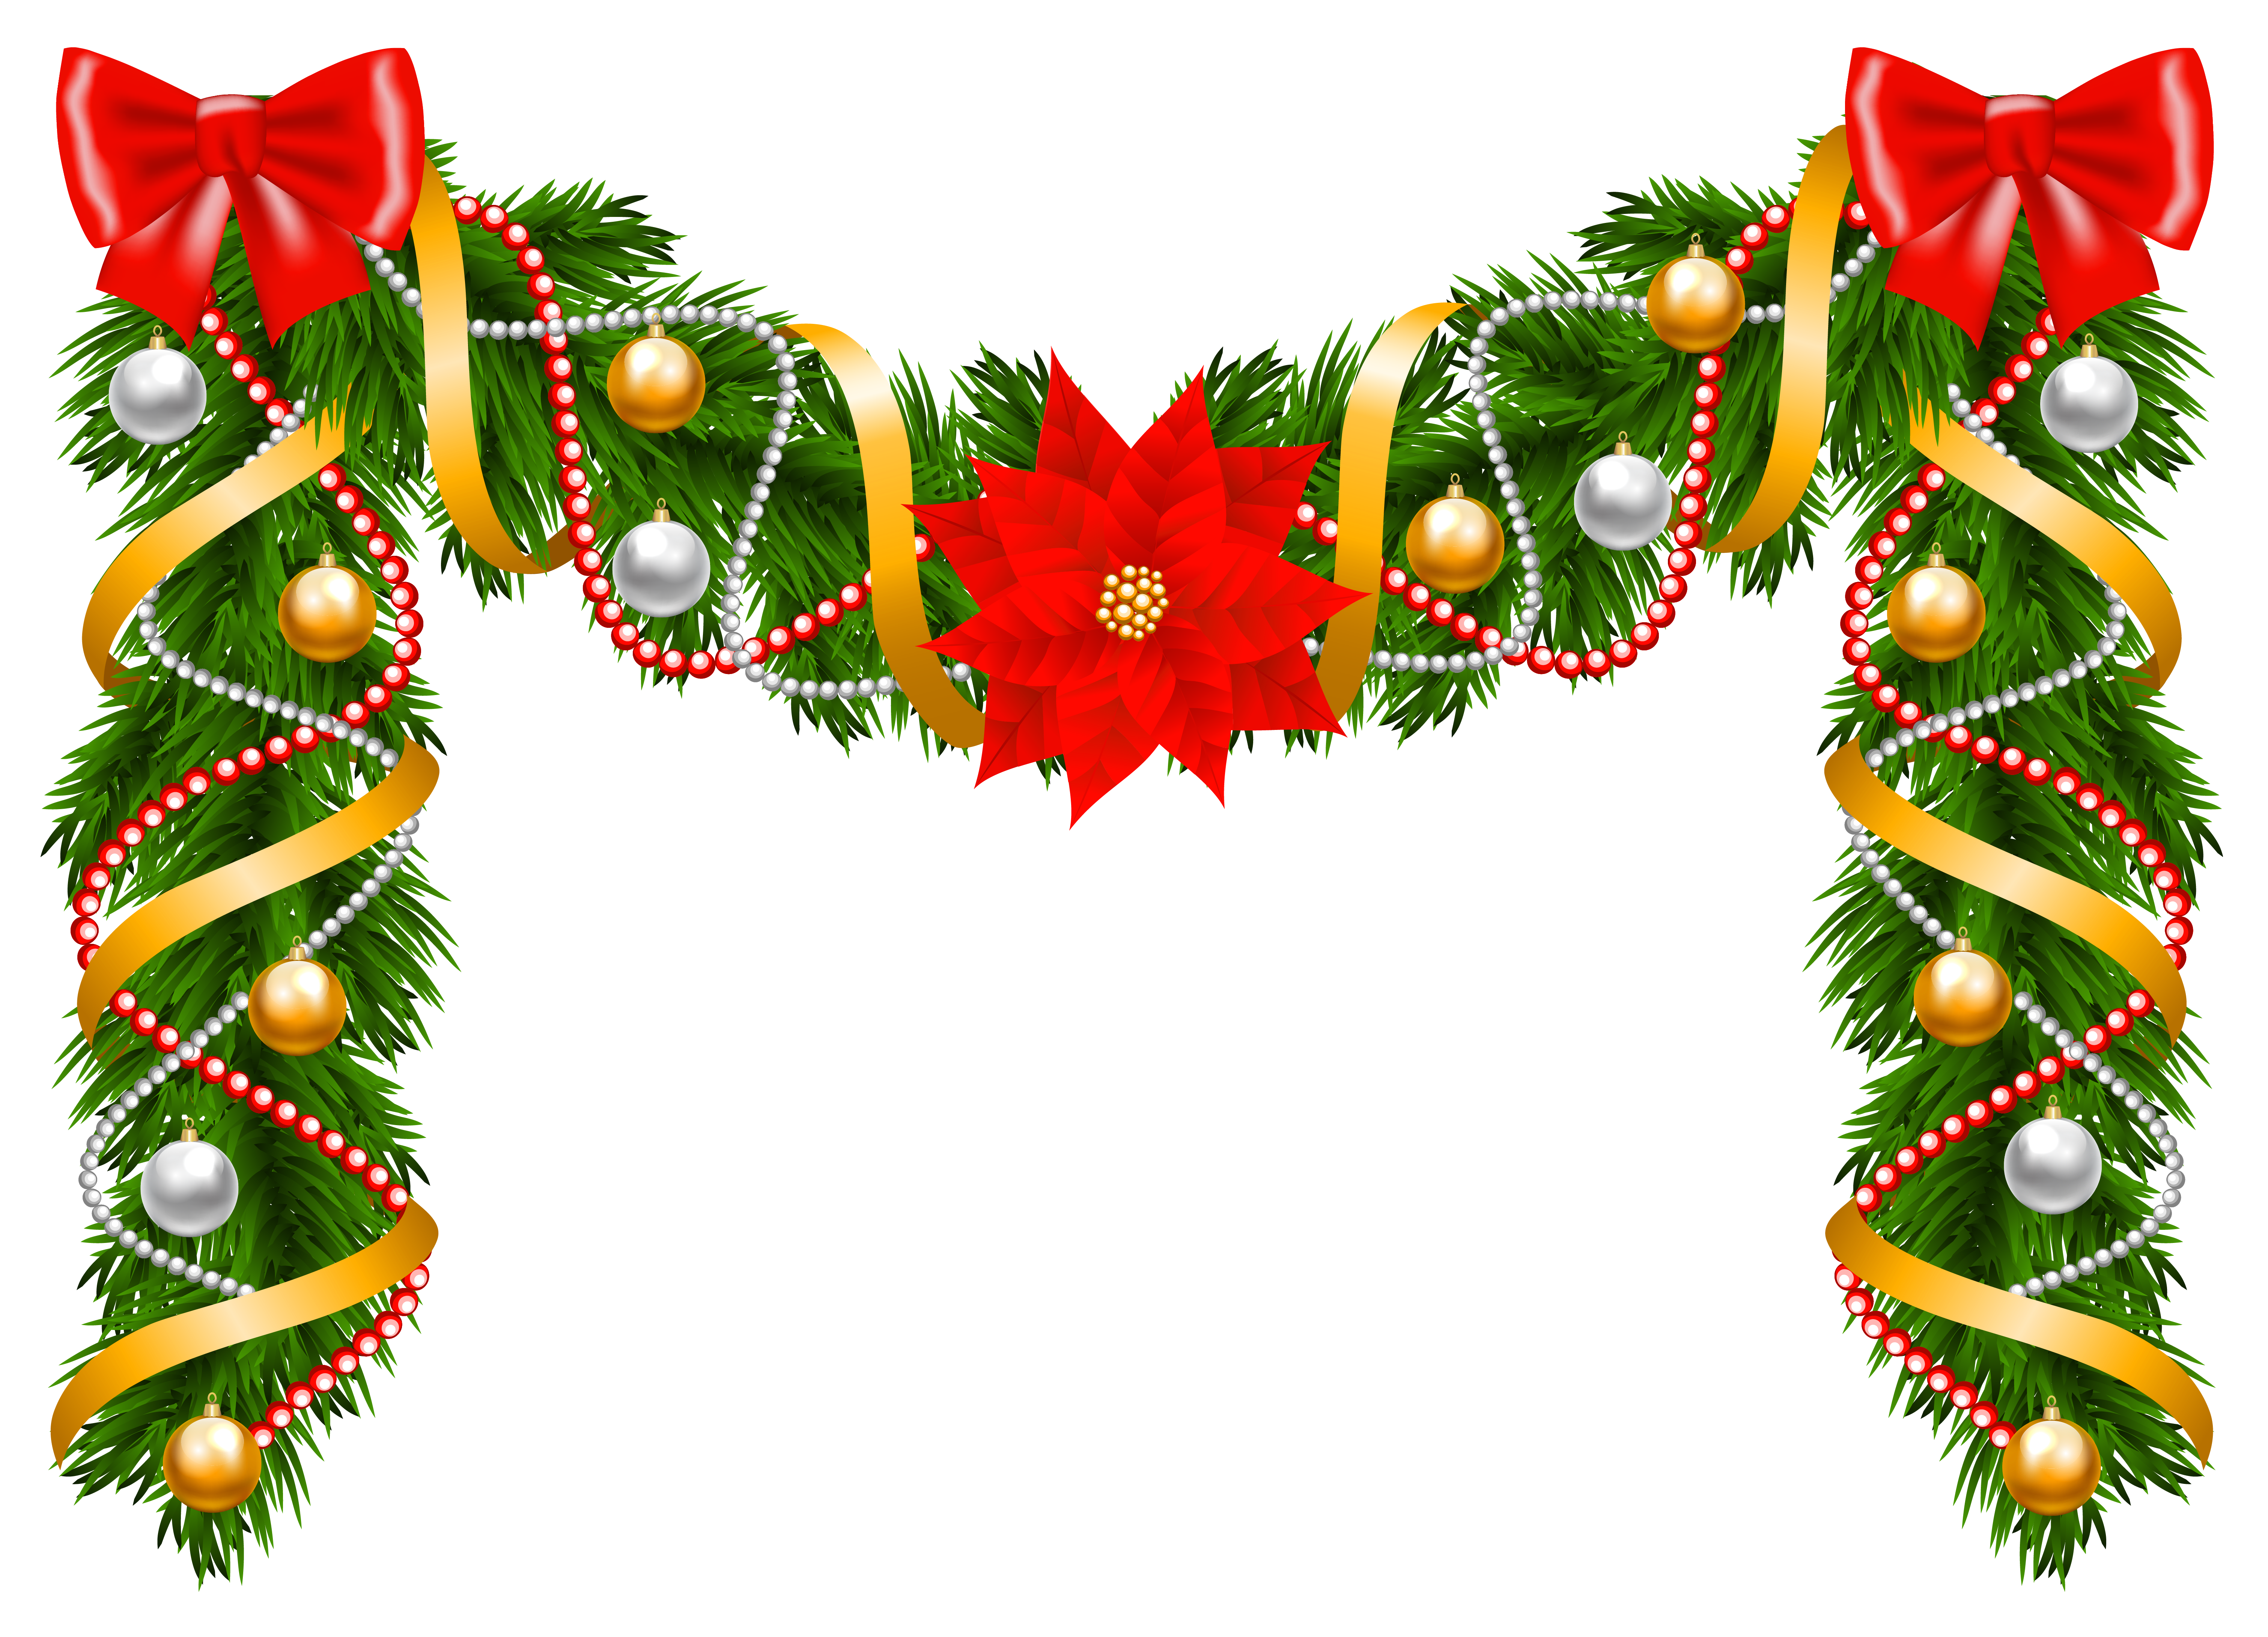 Garland png. Christmas deco clipart image